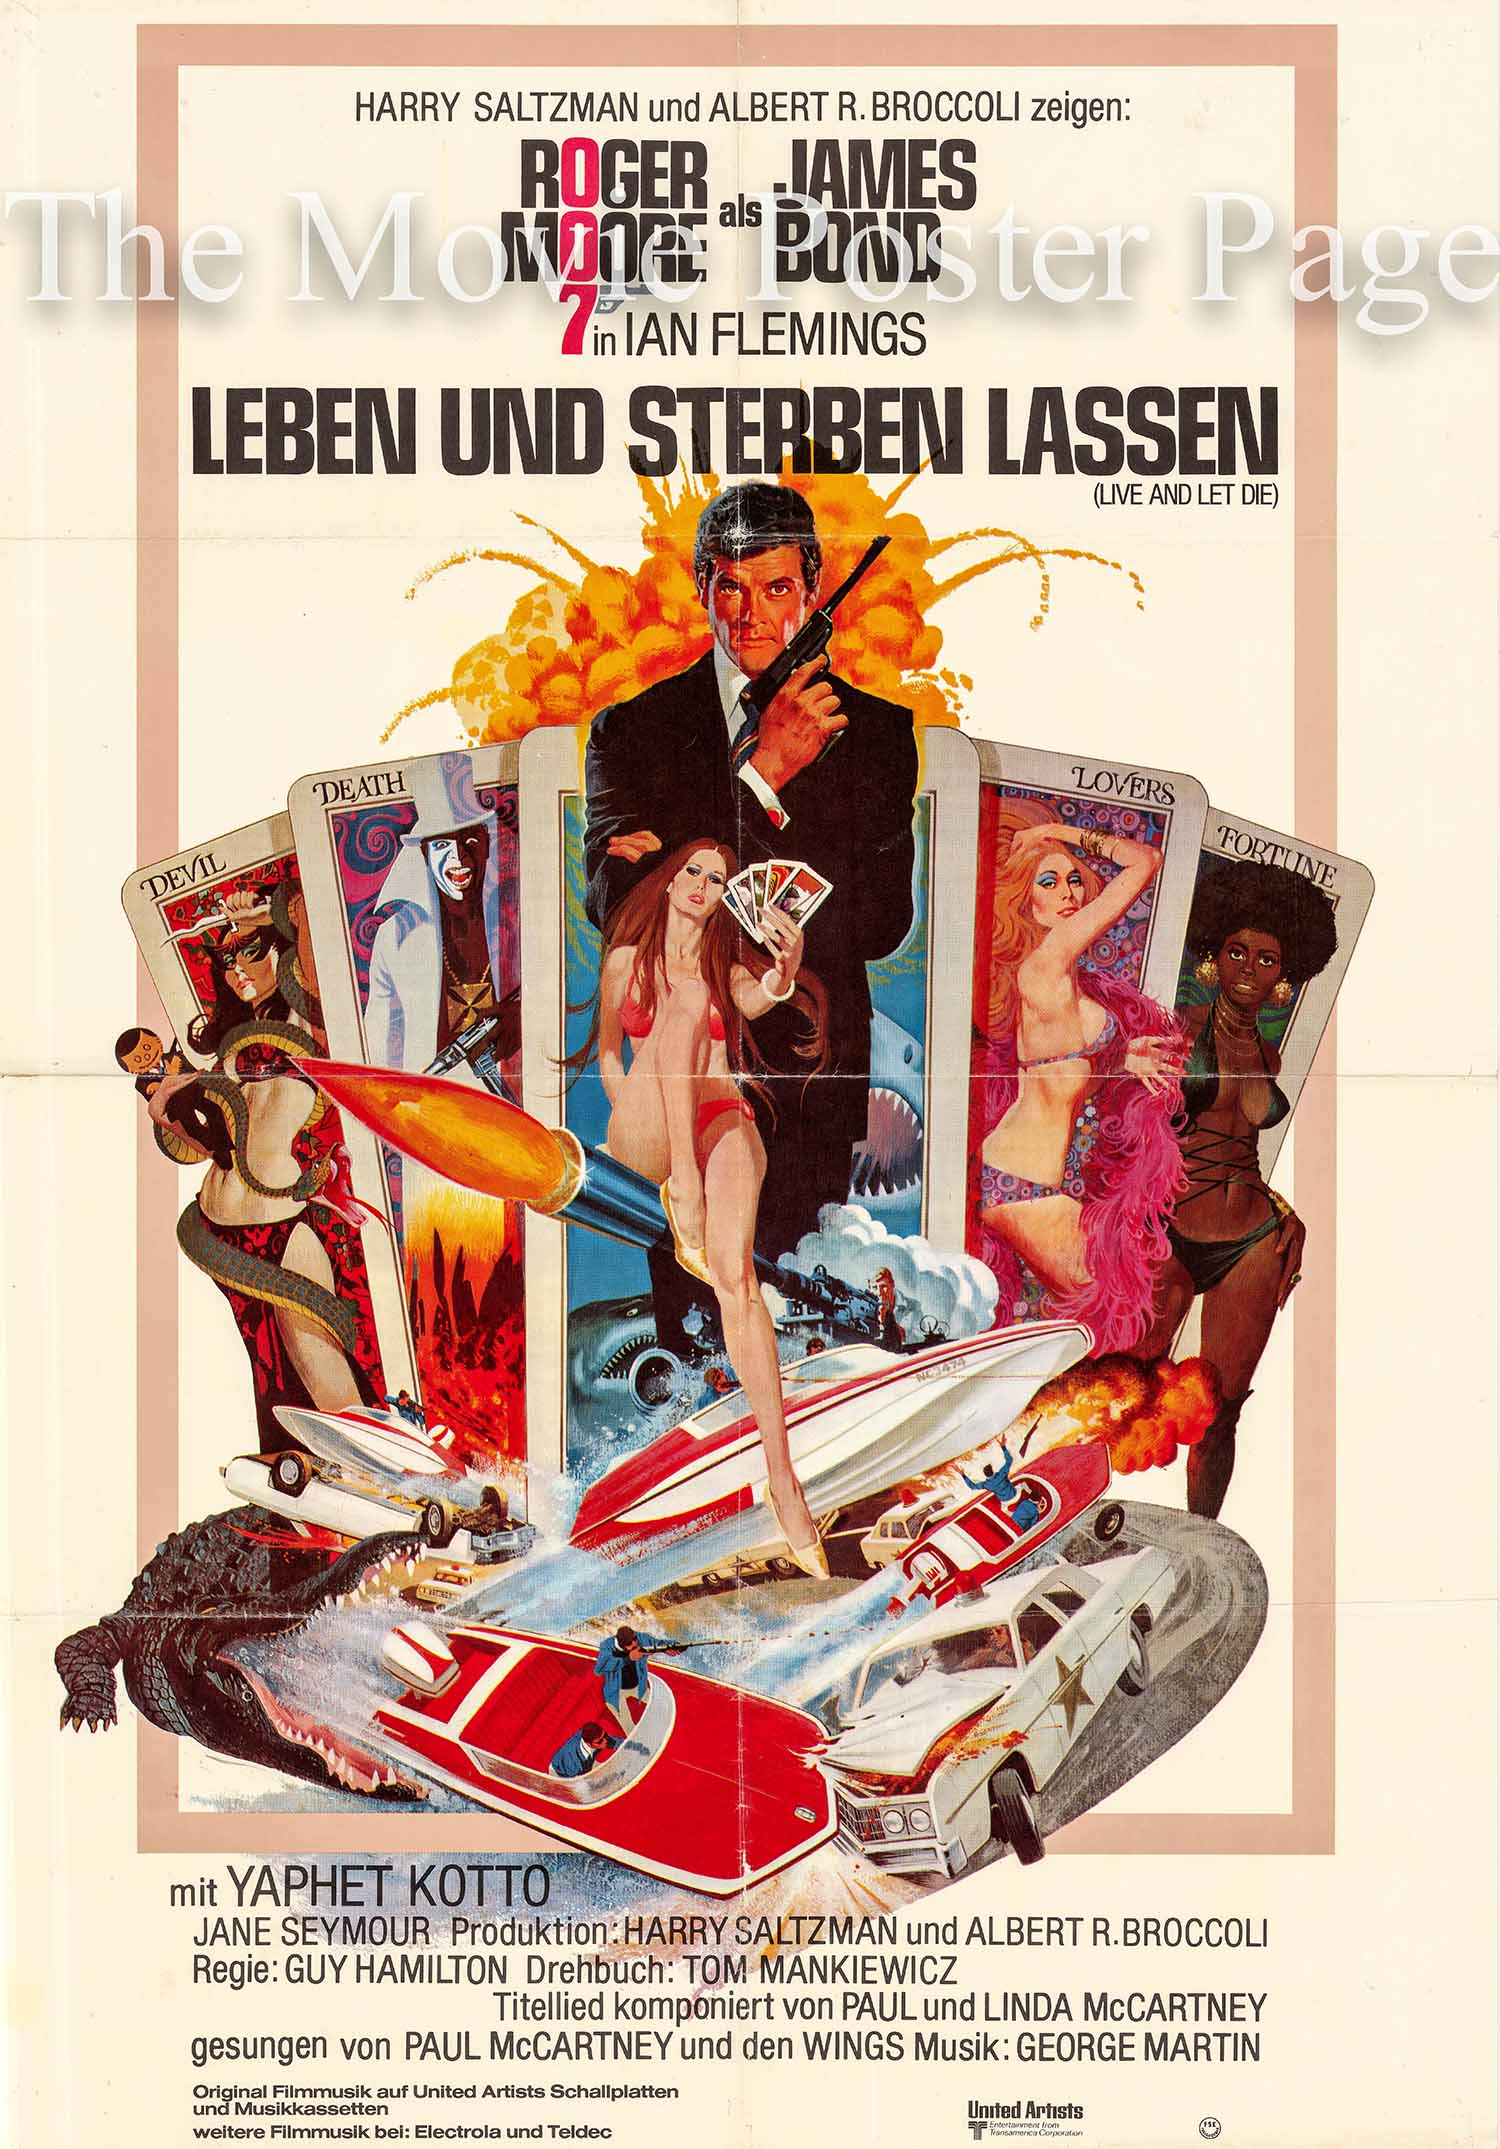 Pictured is a German promotional poster made to promote the 1973 Guy Hamilton film Live and Let Die starring Roger Moore as James Bond.